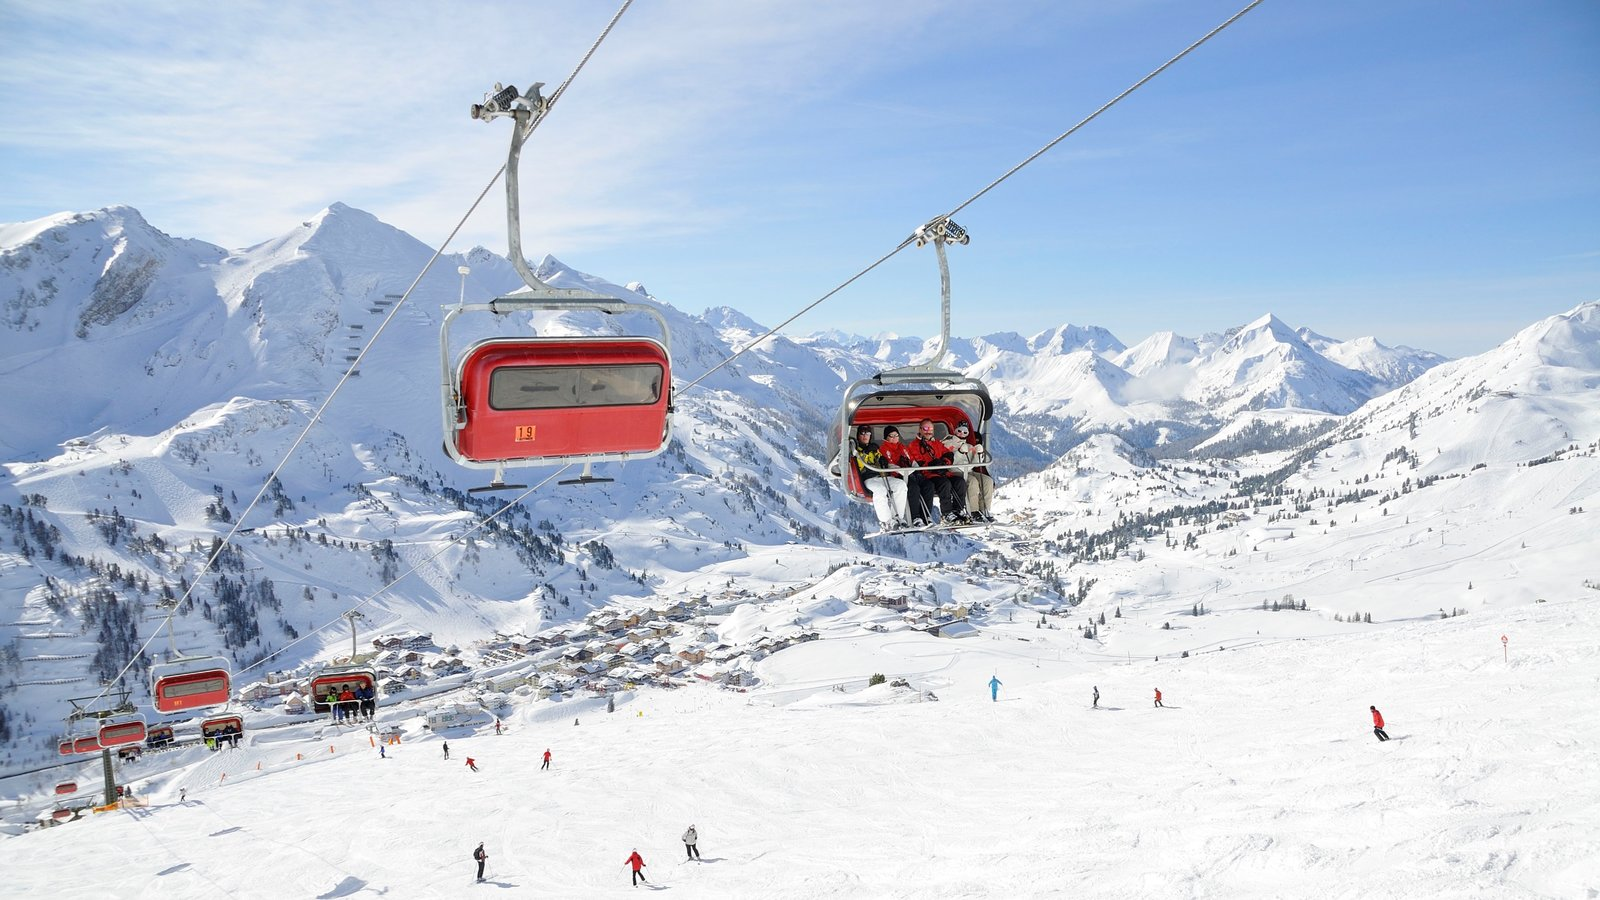 Obertauern showing mountains, a gondola and snow